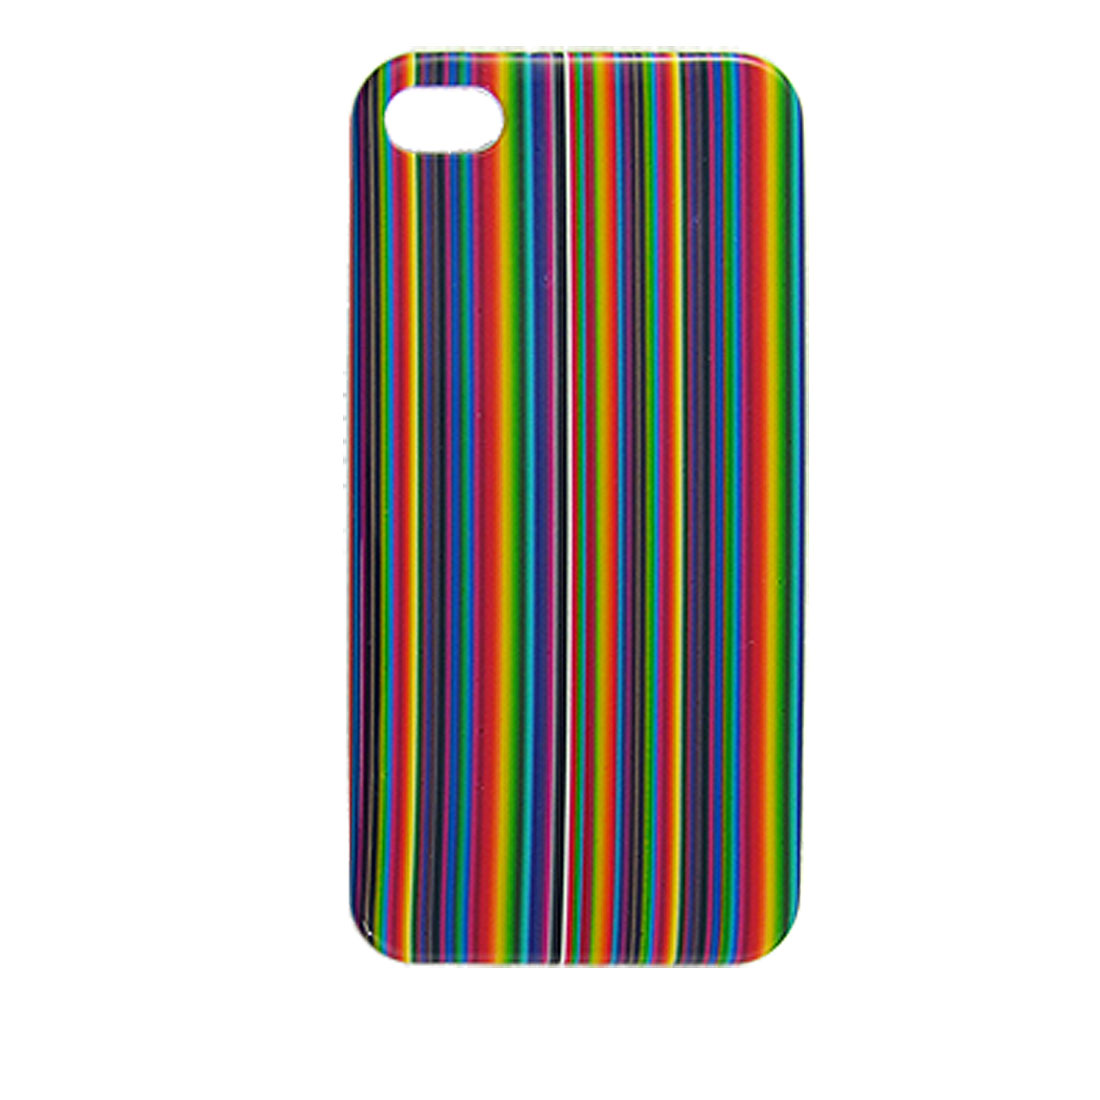 Color Bars Pattern Hard Plastic IMD Back Case Cover for iPhone 4 4G